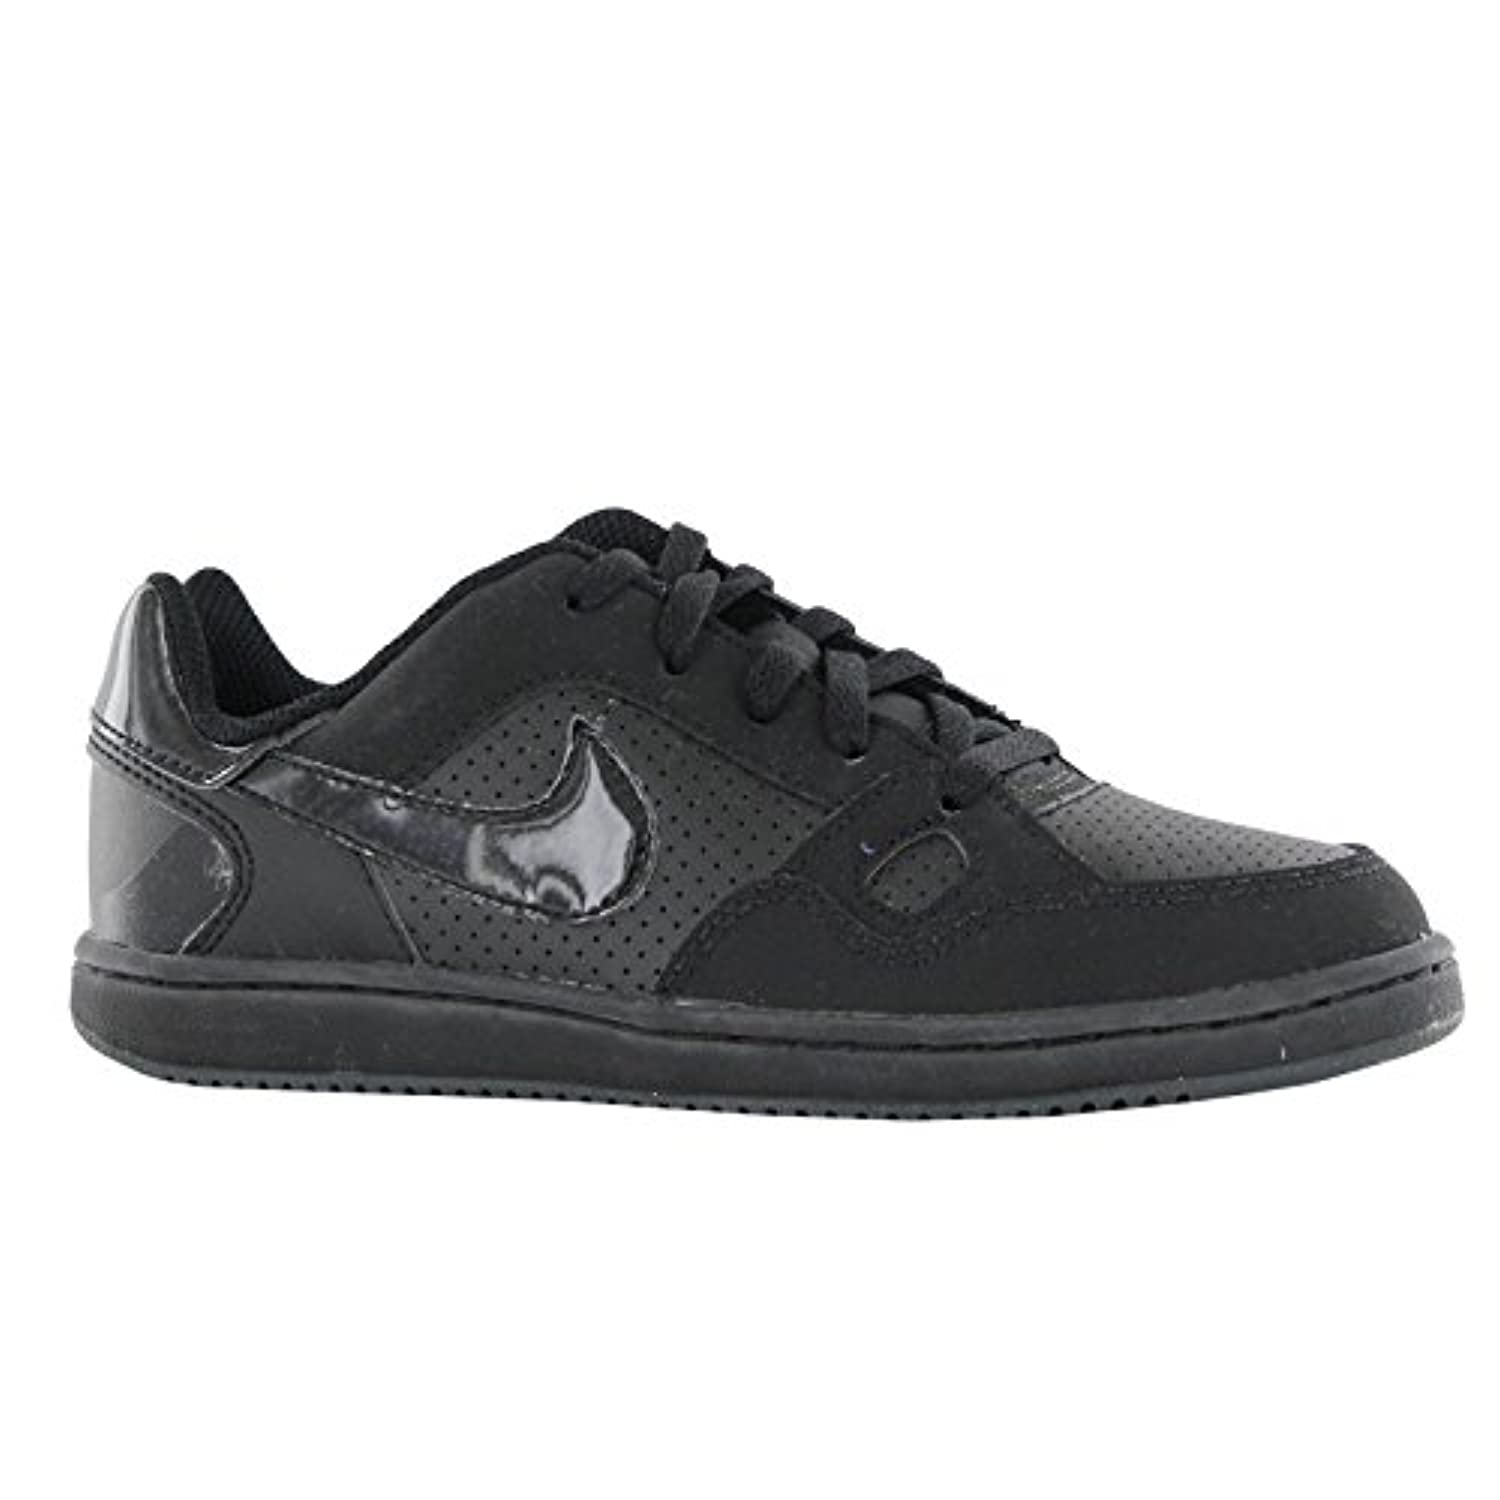 Nike Son of Force Black Kids Trainers Size Kids 1.5 UK